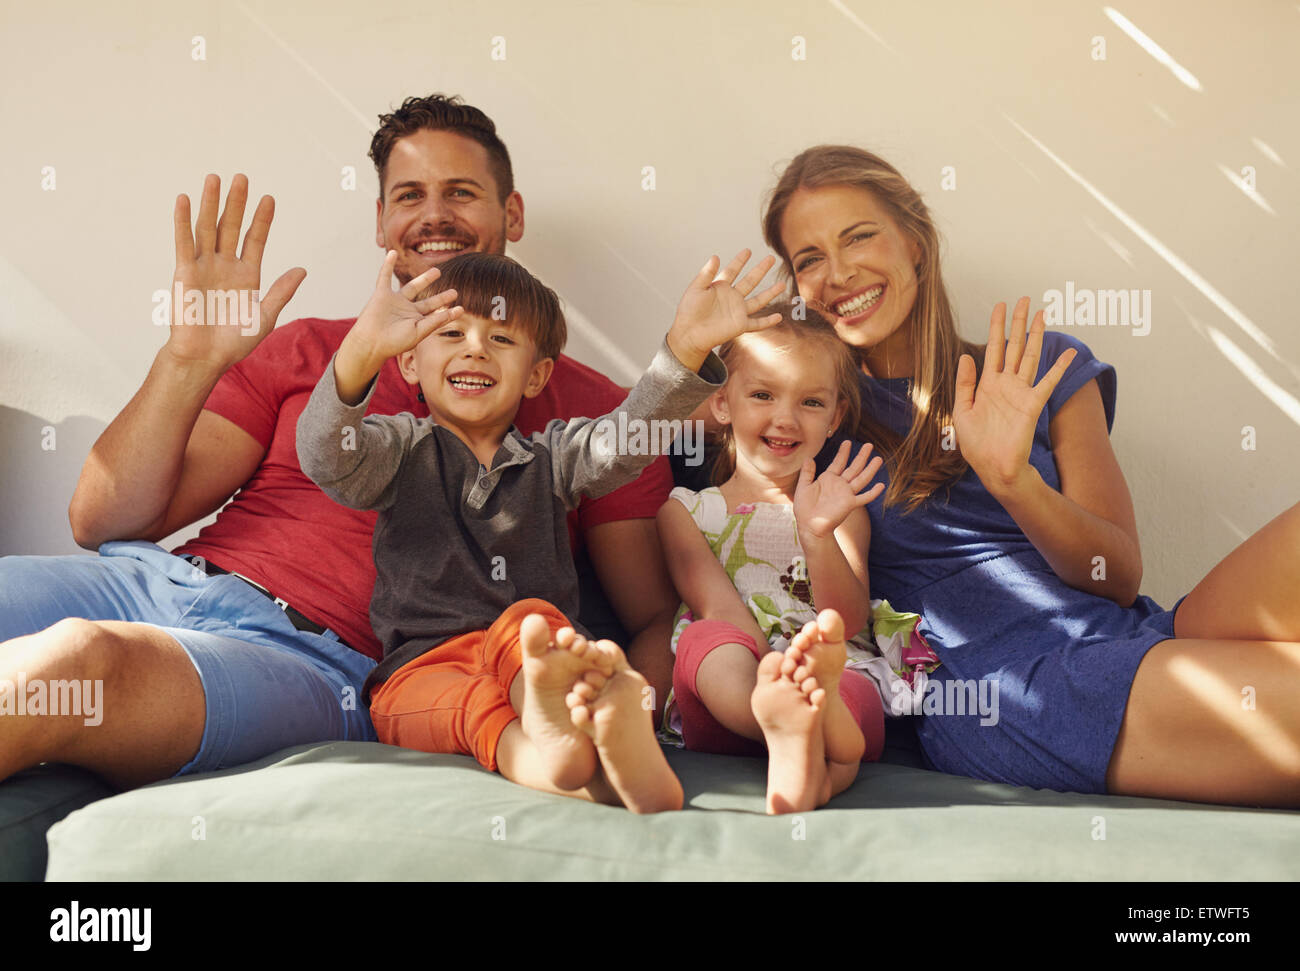 Family sitting on couch smiling and laughing together, waving at camera. Couple with kids on patio having fun outdoors - Stock Image